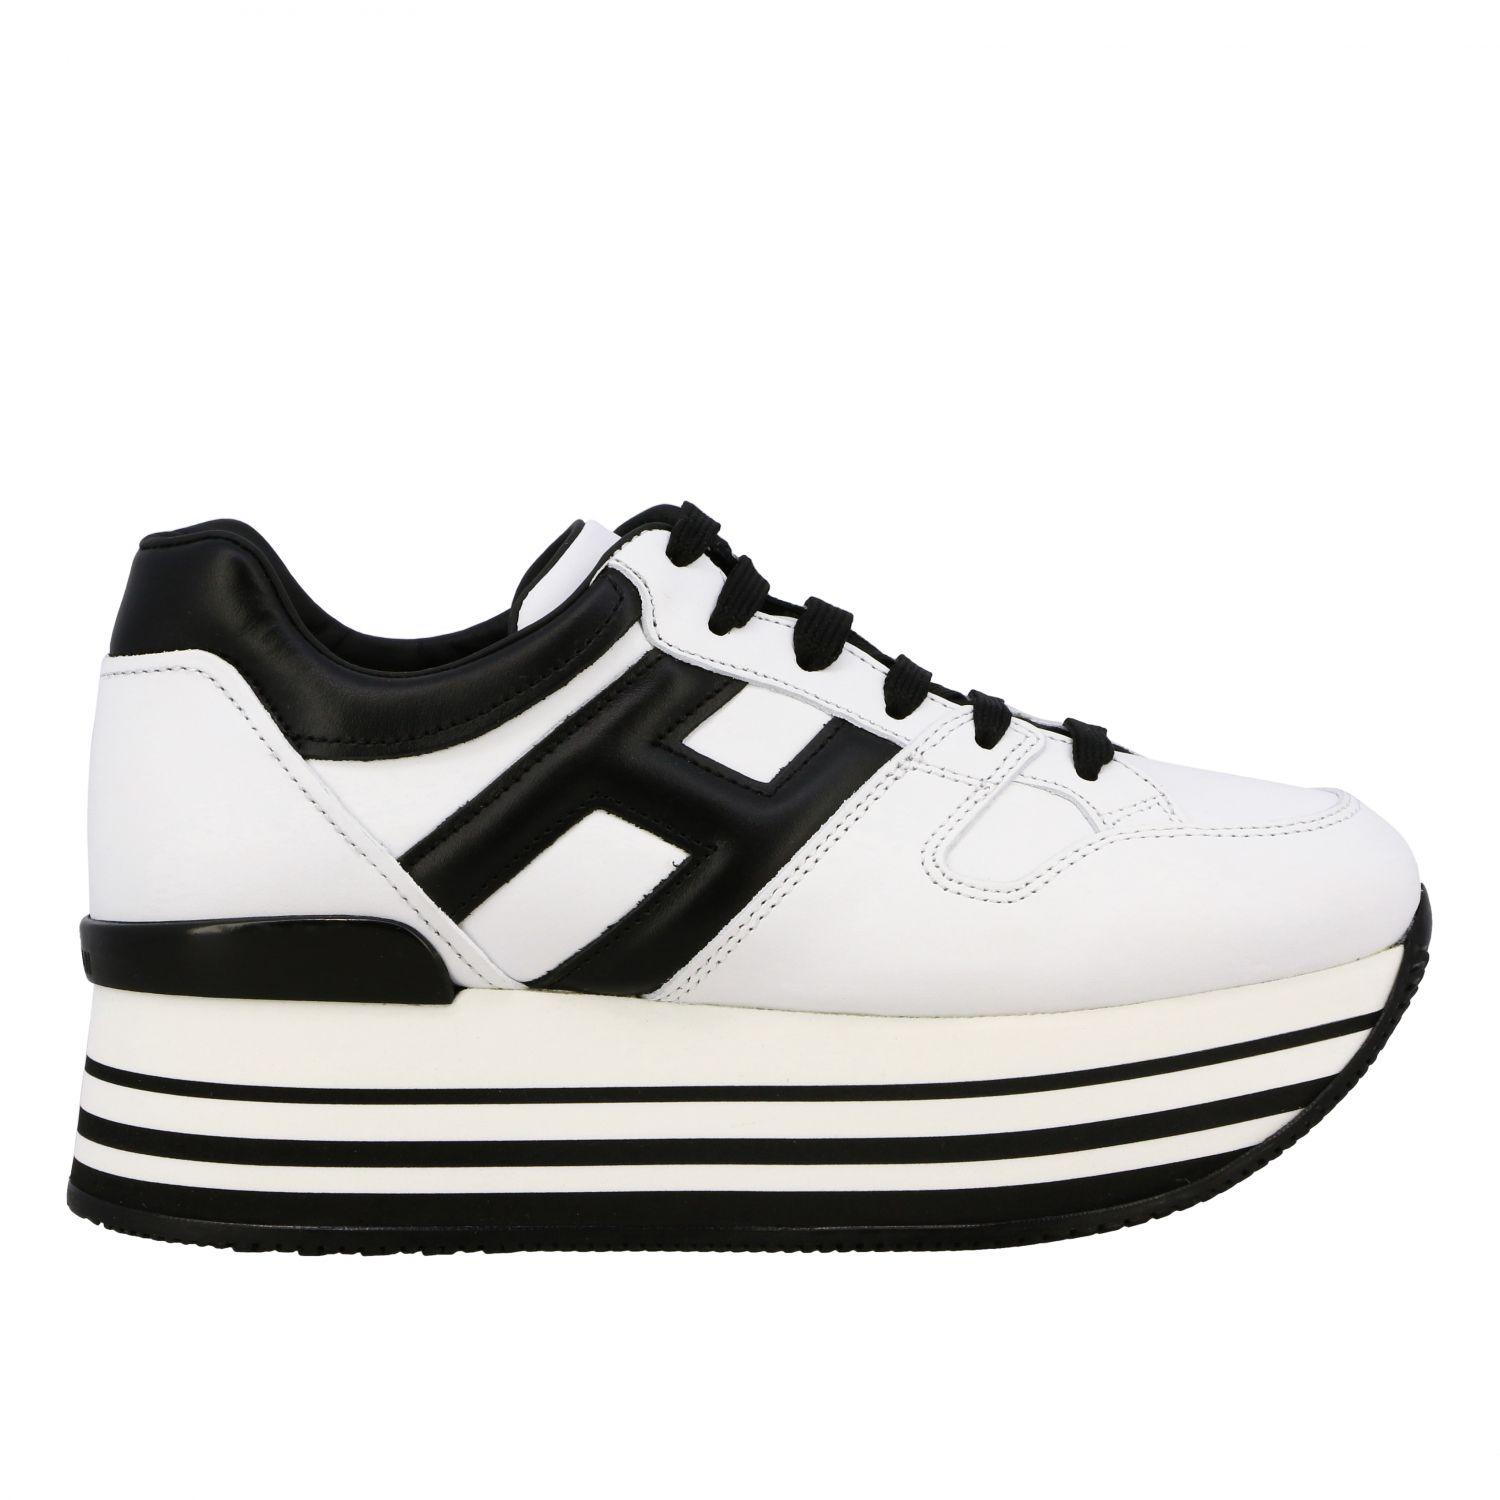 H222 Black And White Leather Sneakers